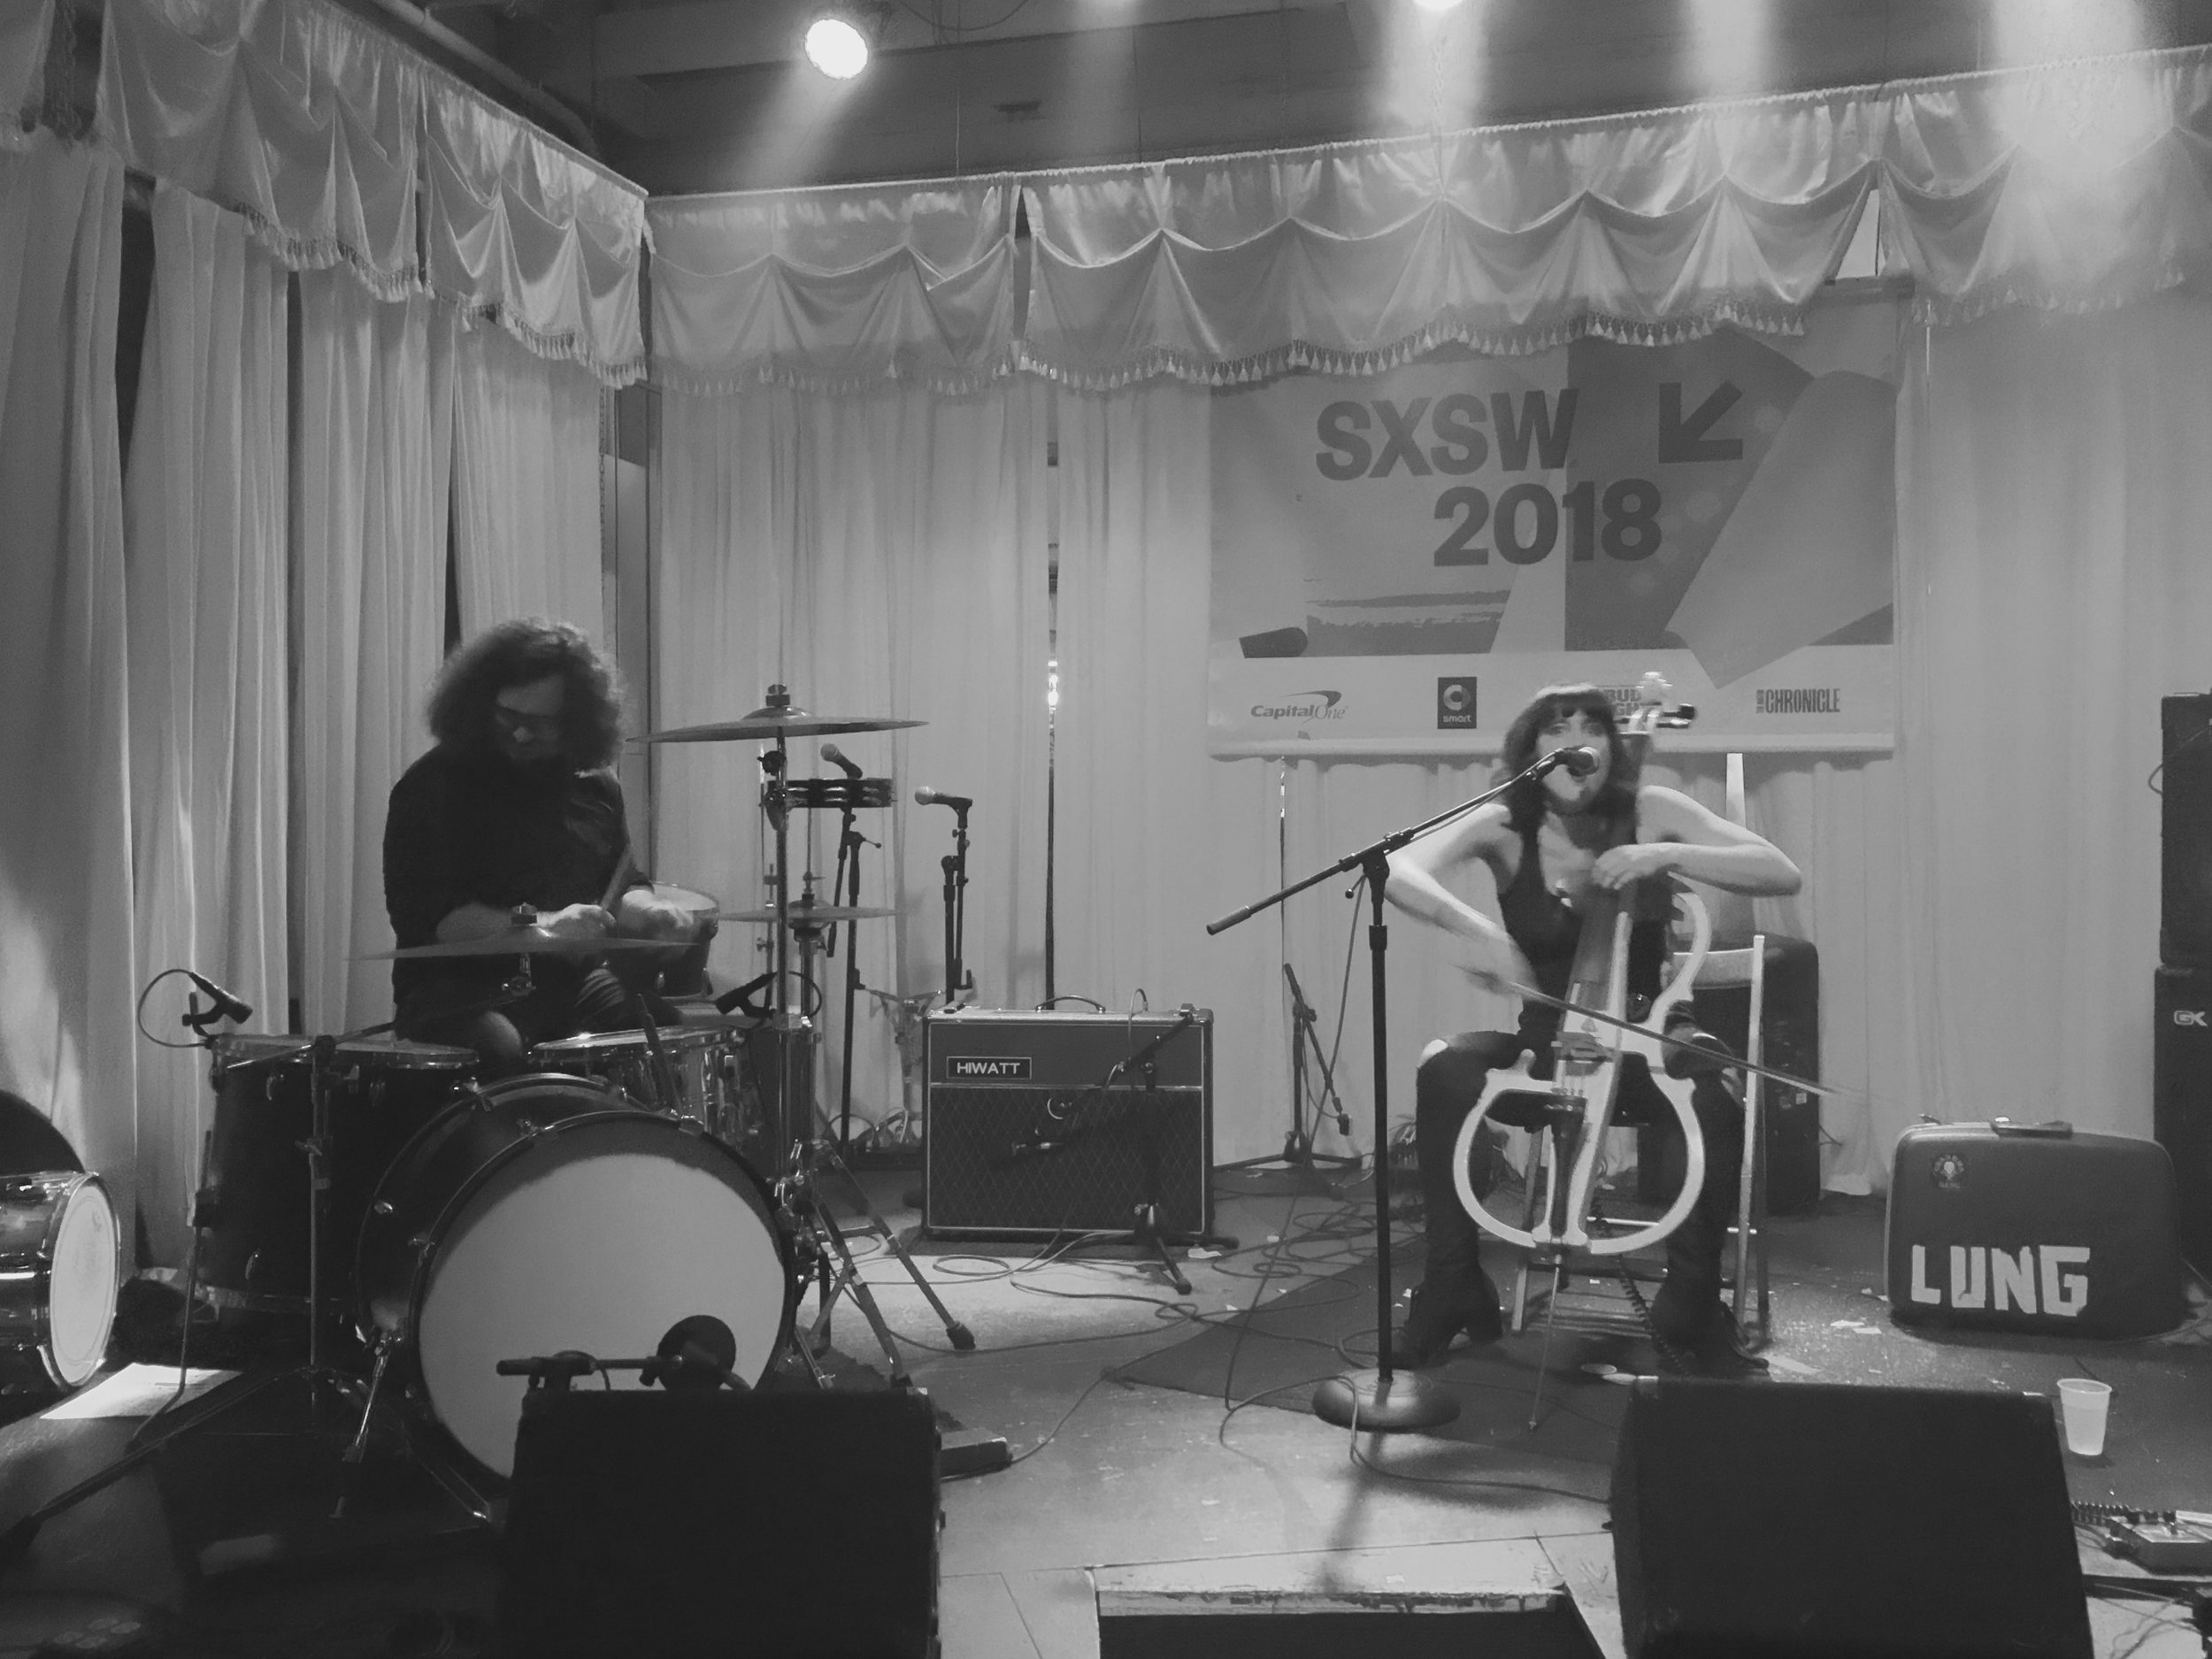 SXSW official Showcase was at Swan Dive presented by Old Flame Records and Outer Orbit Booking. We played with our good buds Dawg Yawp, and Frontier Folk Nebraska (both out of Cincinnati).